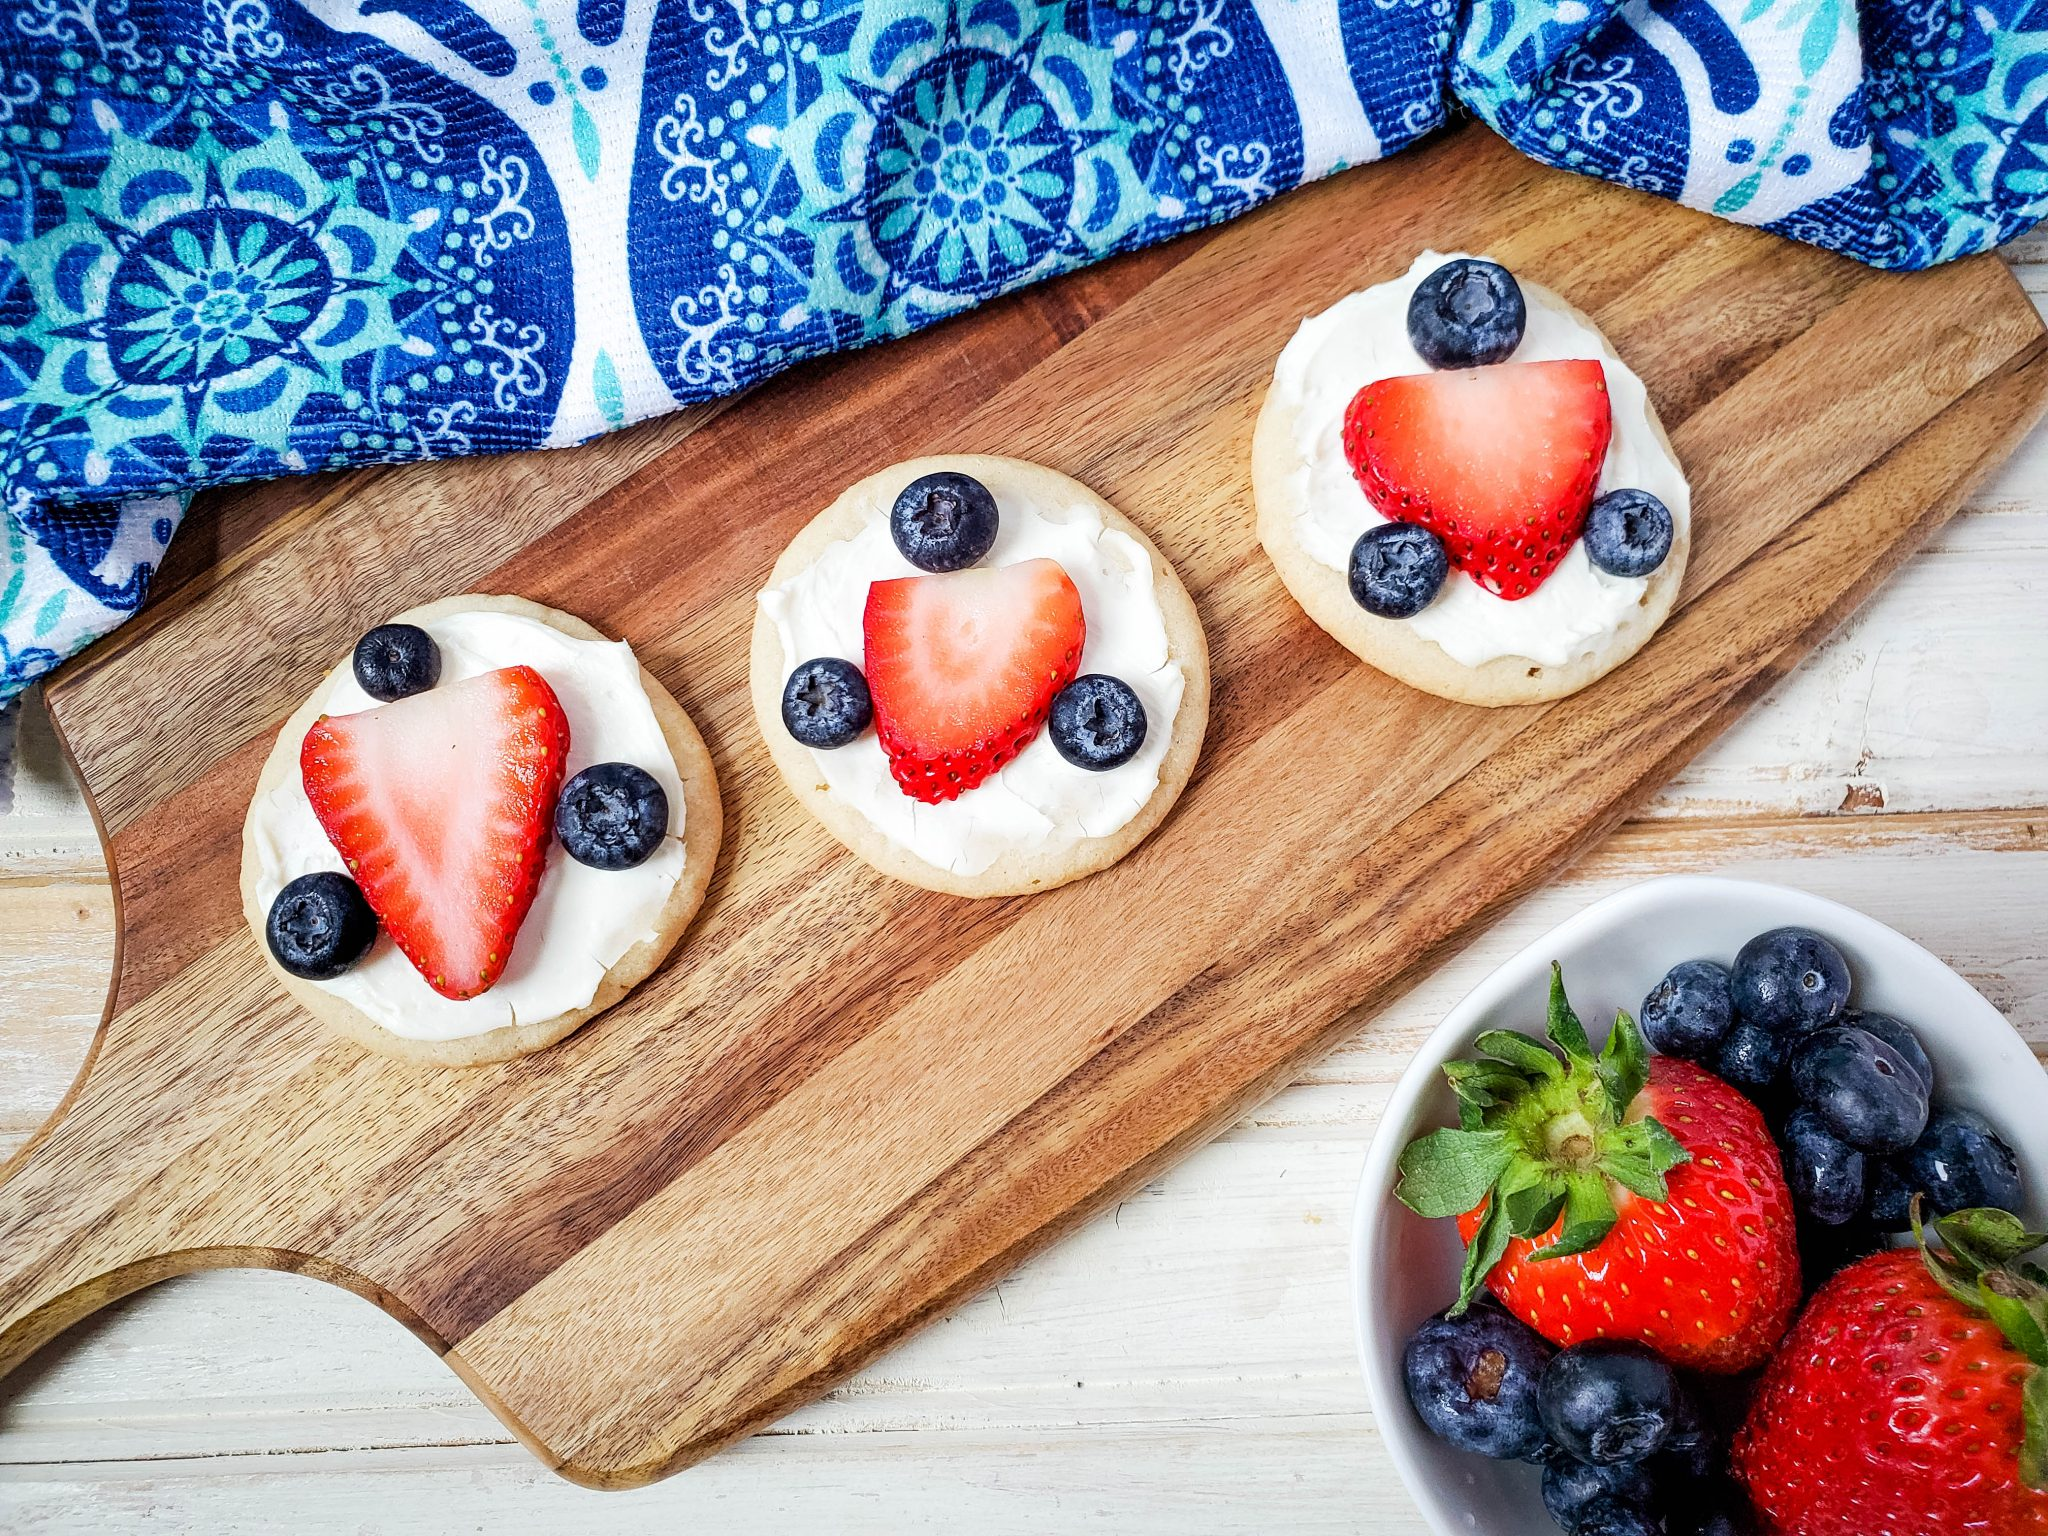 Three sugar cookies with white icing decorated with a strawberry slice and three blueberries on a wooden cutting board